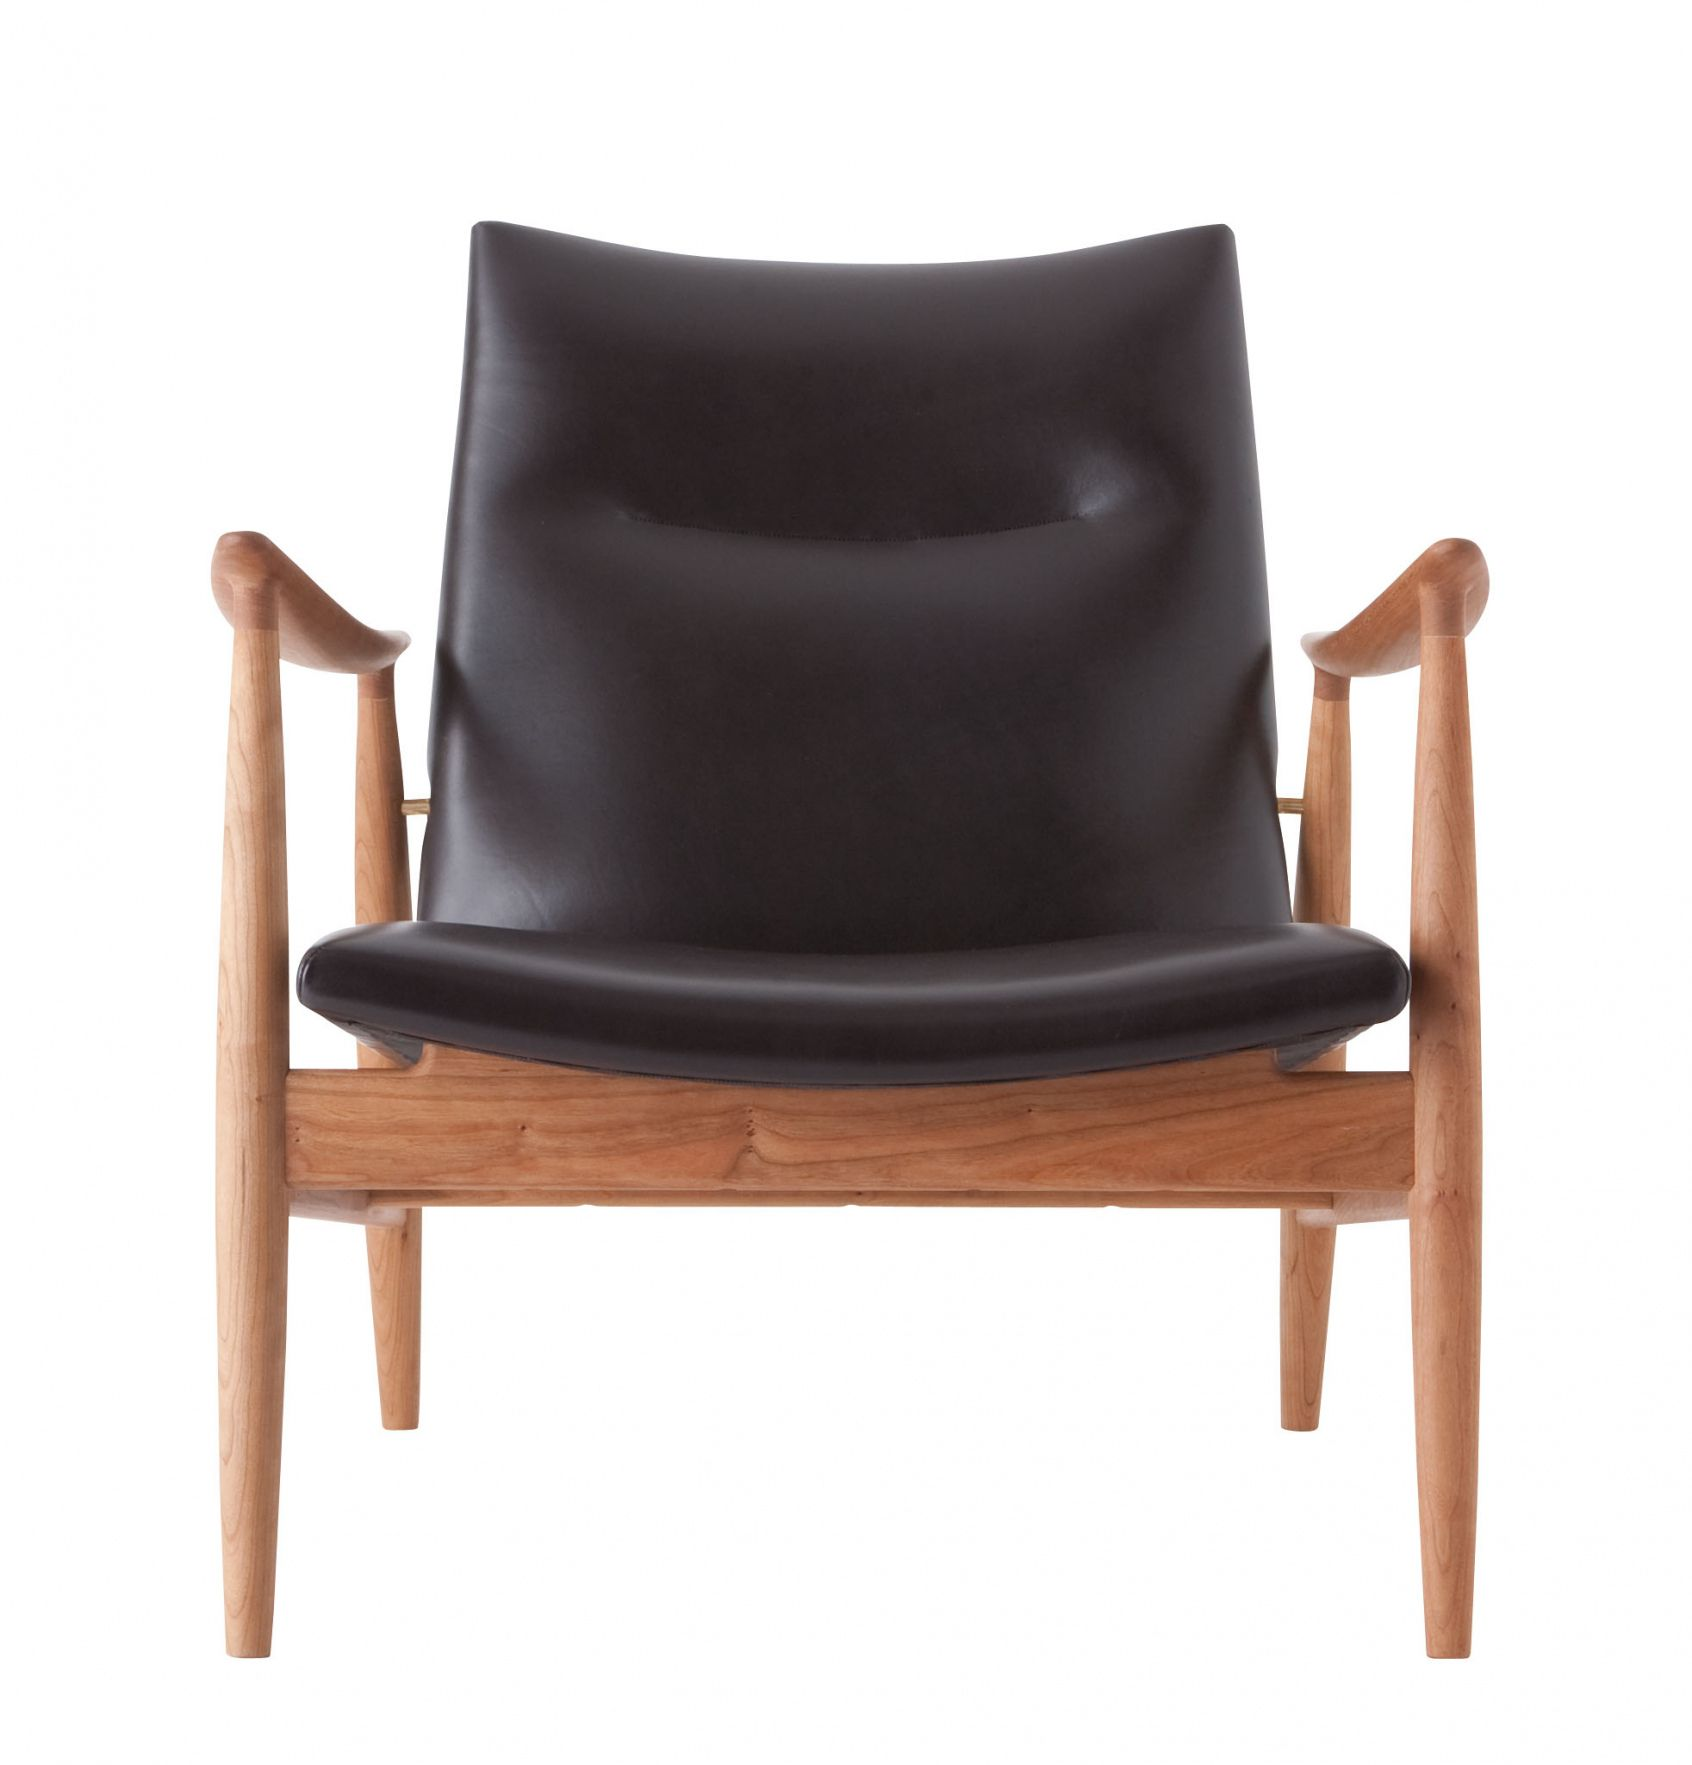 70 Scandinavian Chairs Leather Best Paint For Wood Furniture Check More At Http